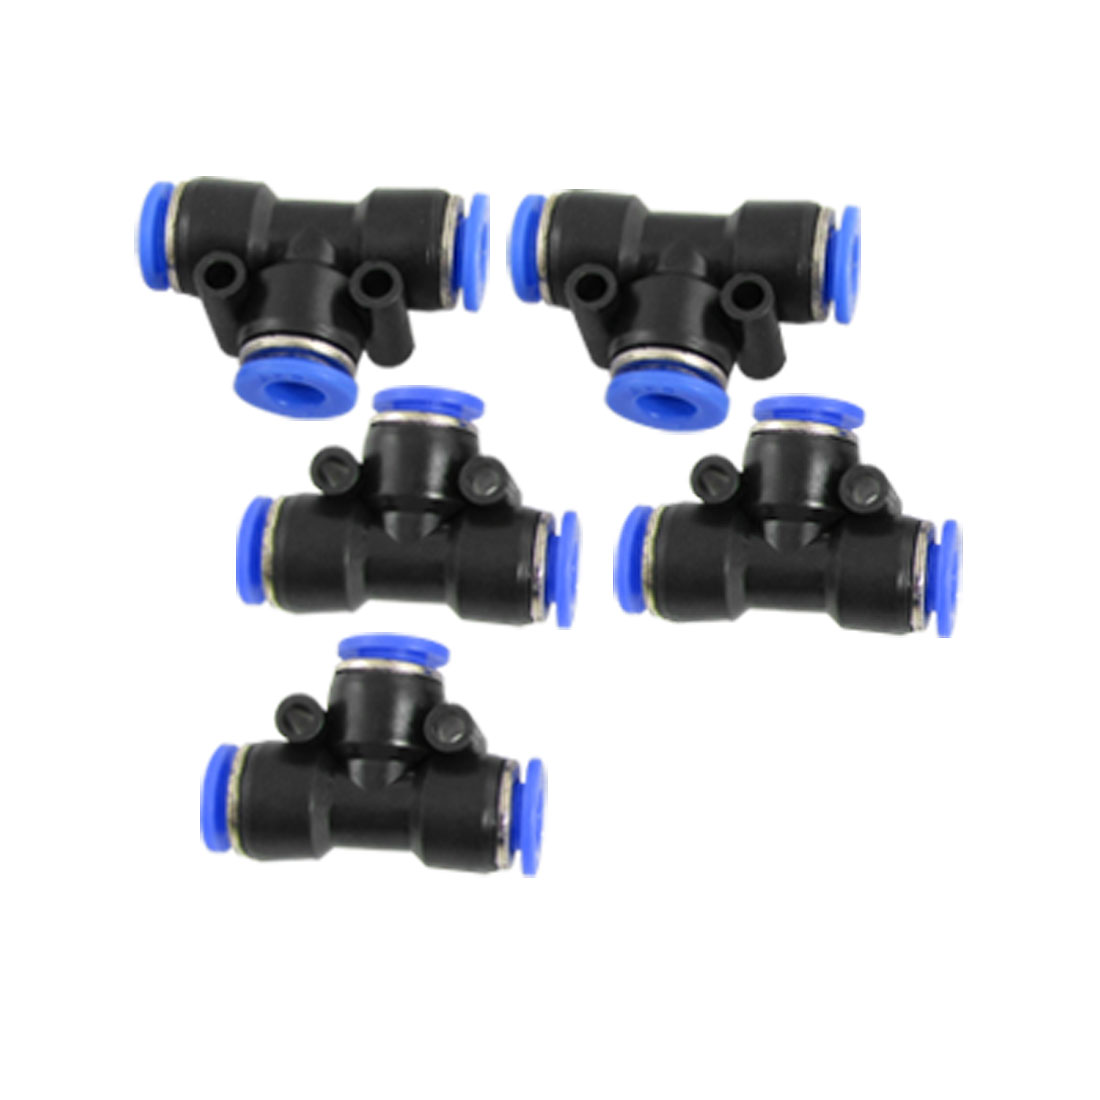 5 Pcs 6mm Quick Connector One Touch Pneumatic Fittings